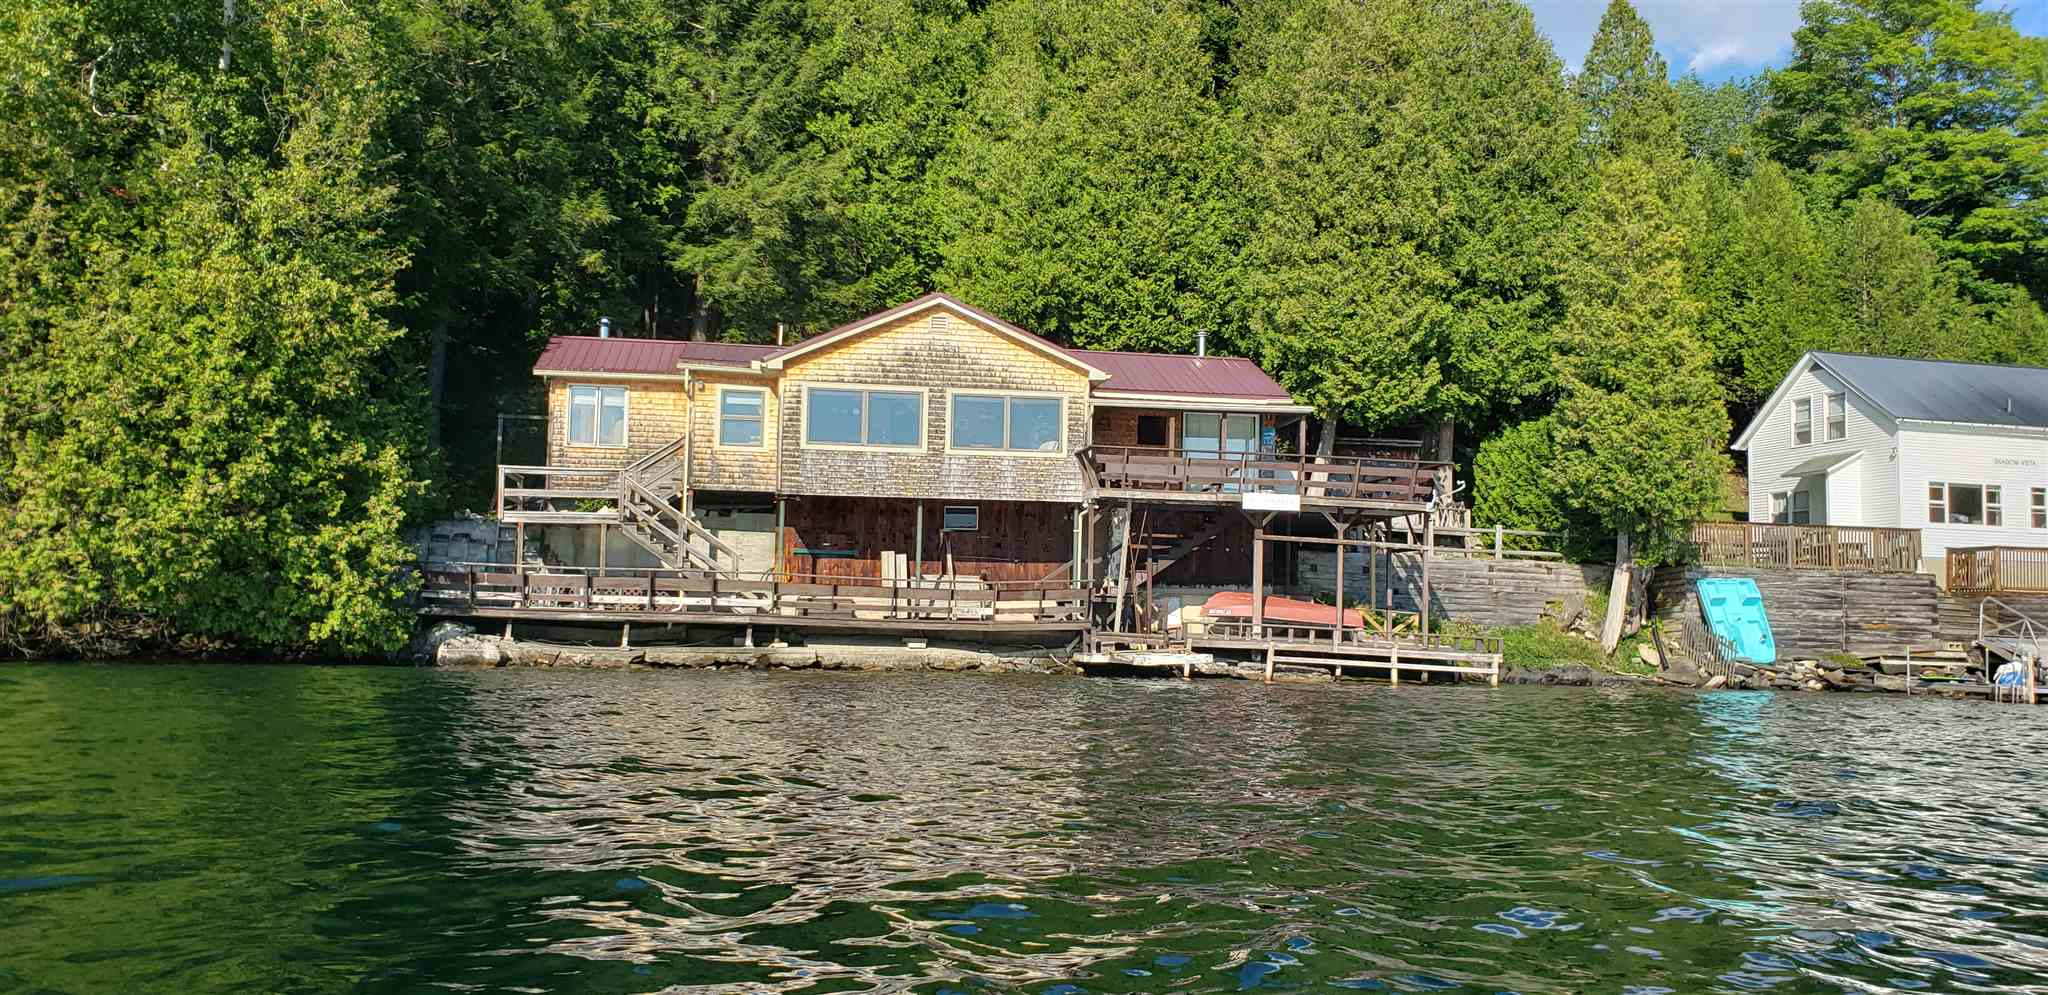 Make your summers fun! This 3 bedroom camp offers 100' of beautiful Lake front. The water is clear and deep. Huge deck overlooking the lake. Spectacular views from the dining/kitchen. Bring your boat, kayaks and kids. You will enjoy this one!